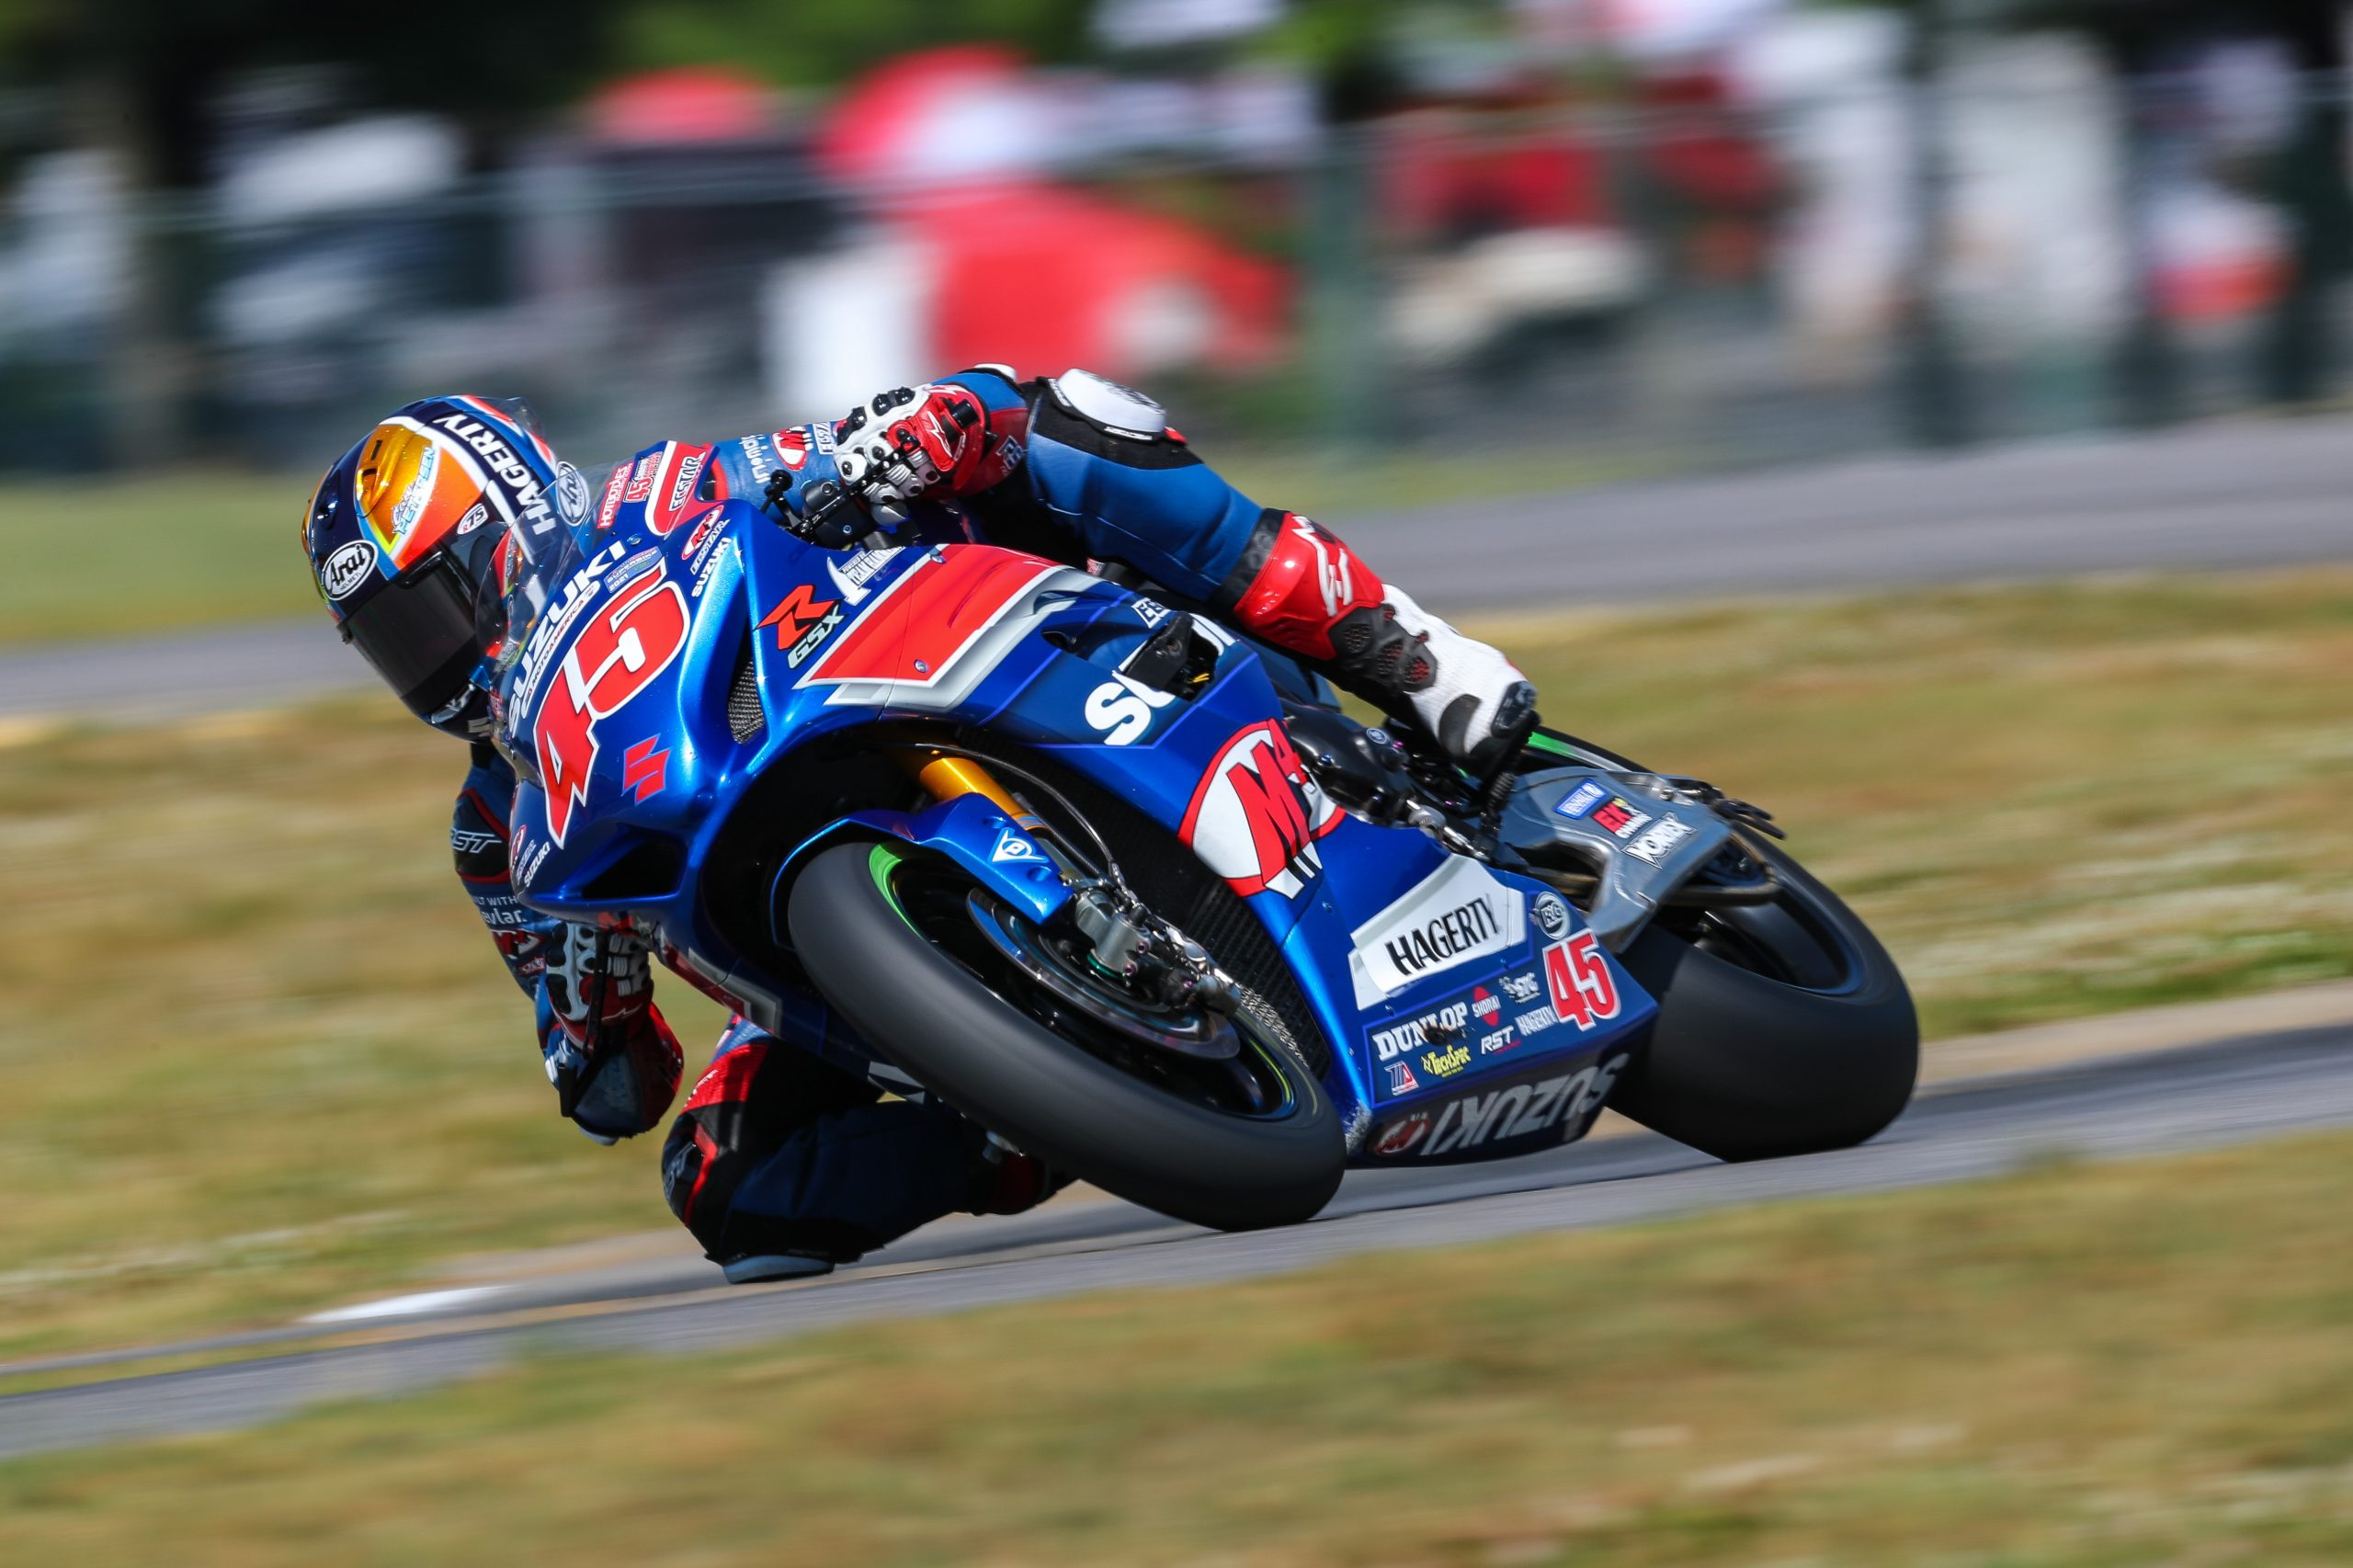 210524 Cam Petersen (45) battled hard for two impressive finishes at VIR in the Superbike class